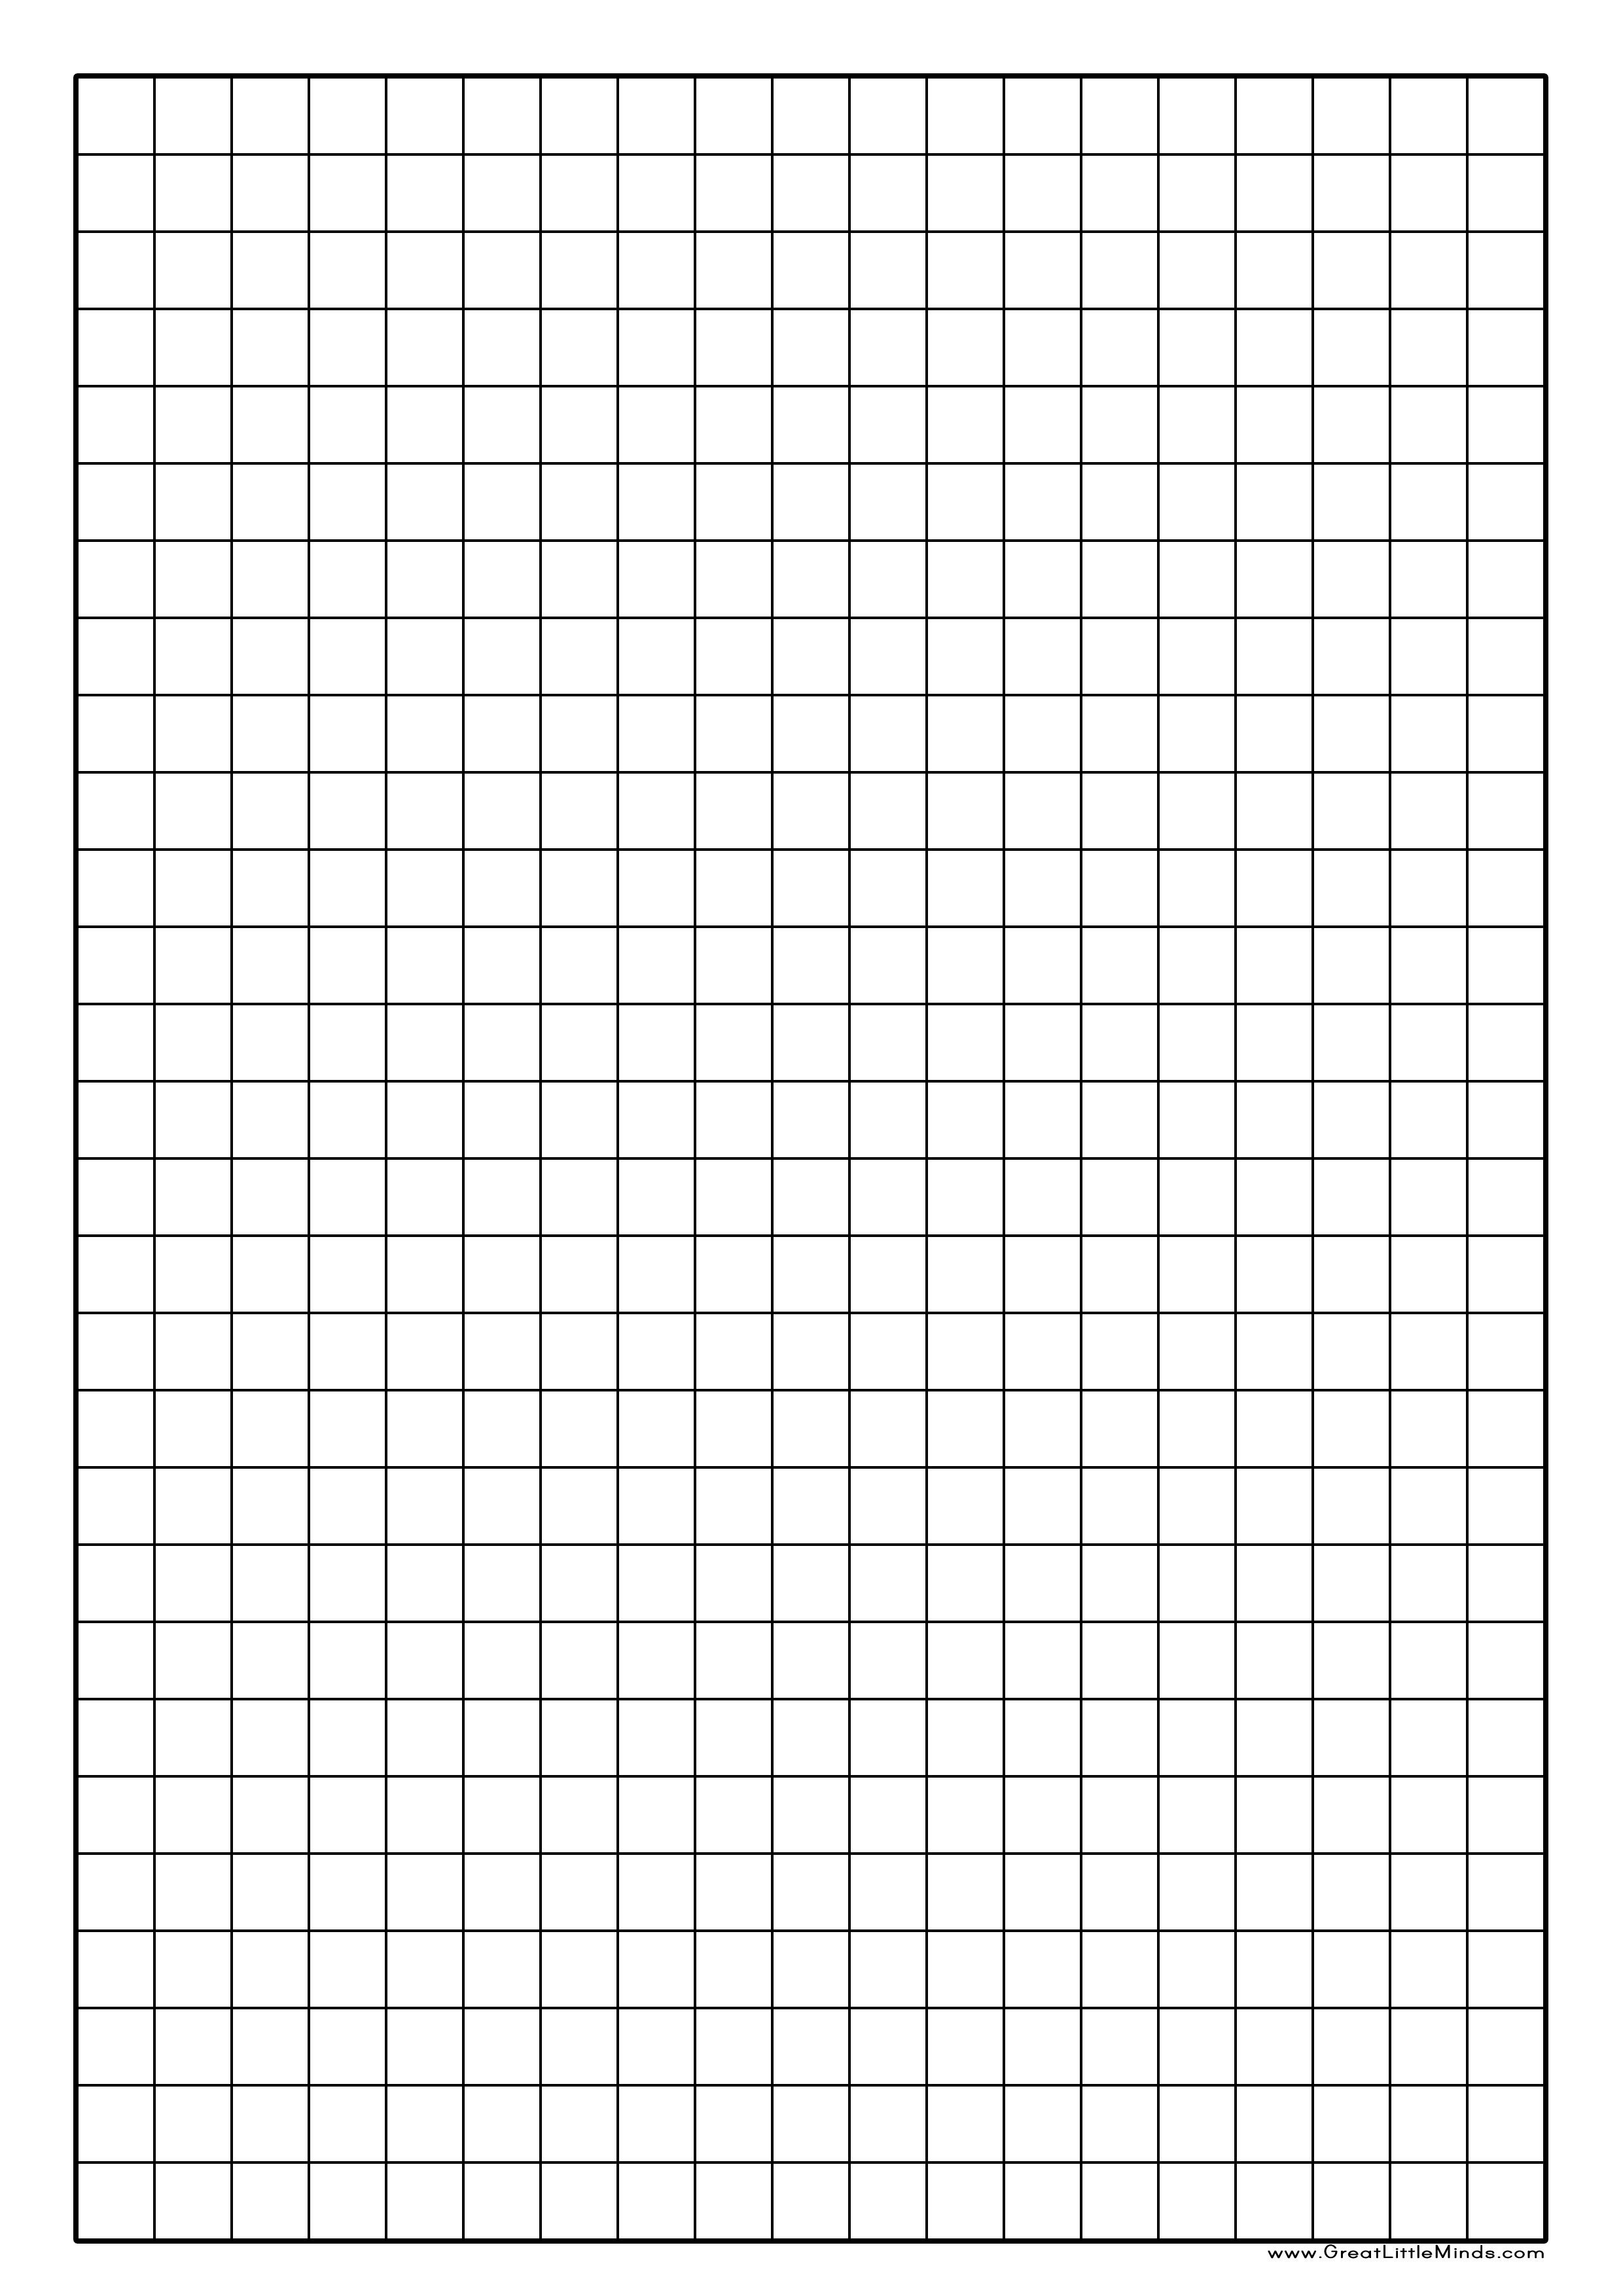 Graph Paper | All Information About Free Printable Graph Paper - Free Printable Graph Paper No Download